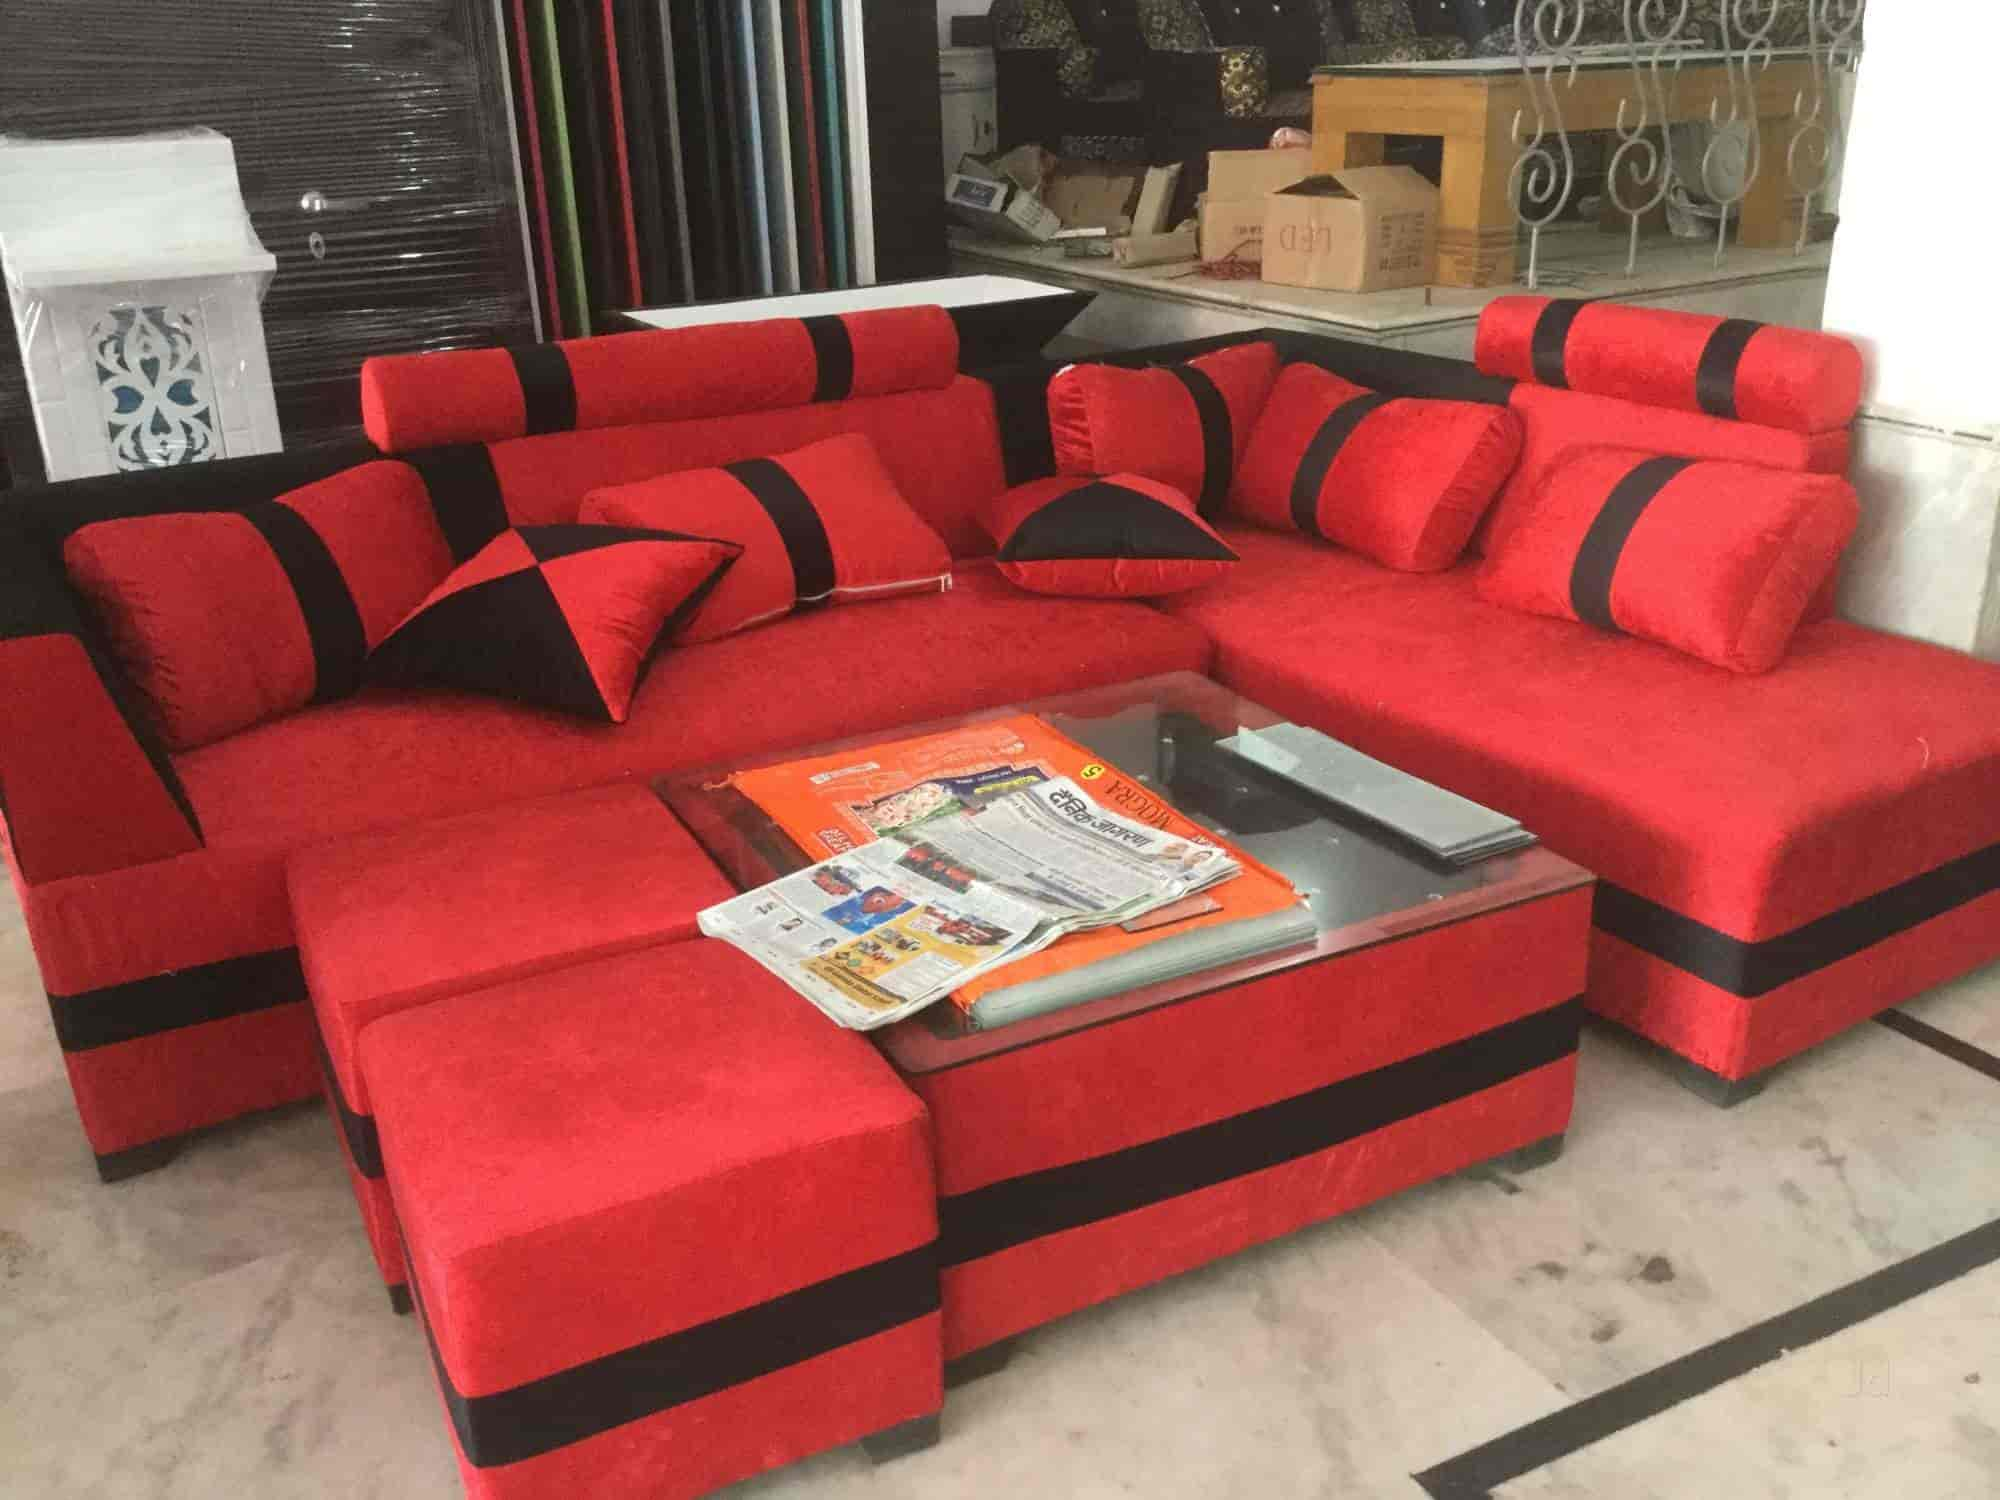 Sofa Set Olx Gurgaon Sofa In Gurgaon Brokeasshome